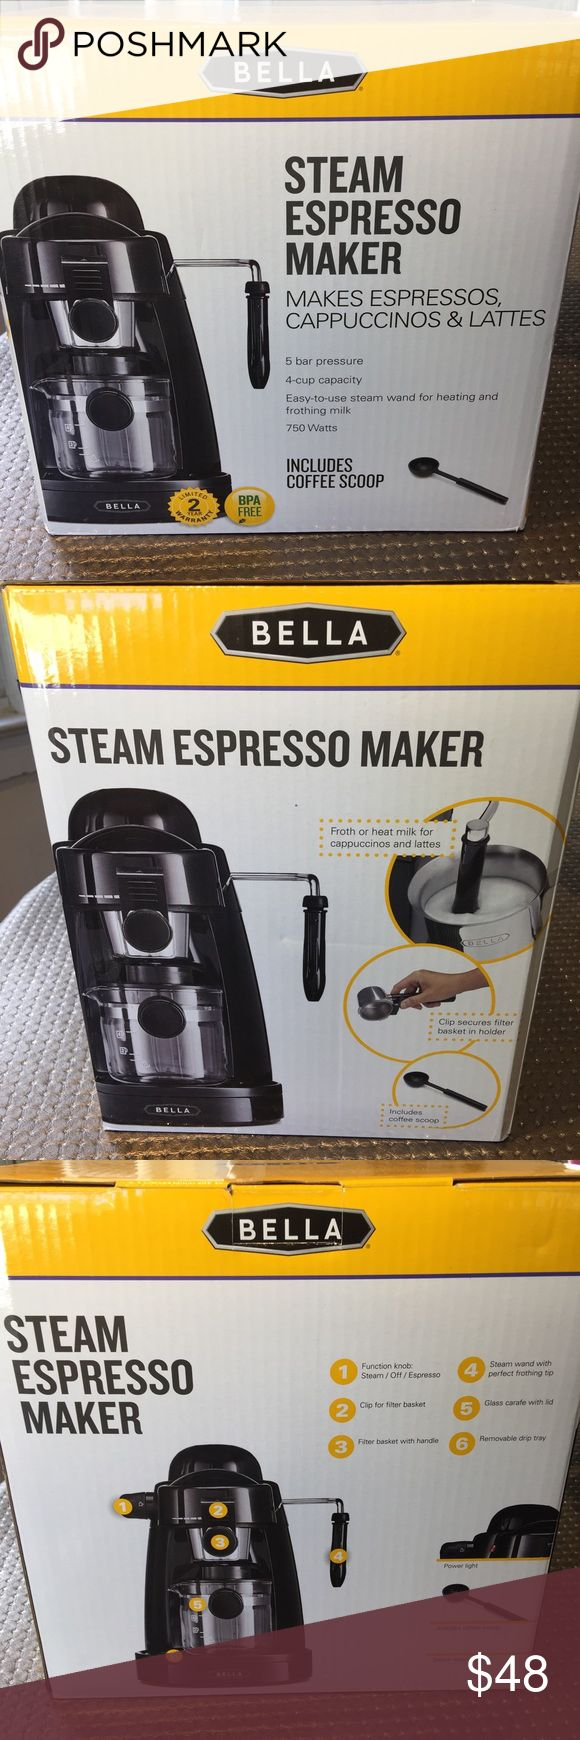 Bella Steam Espresso Maker Spoil your self with this brand new amazingly priced steam espresso maker, don't miss out! Barcode in the bottom of the box is cut off. Other